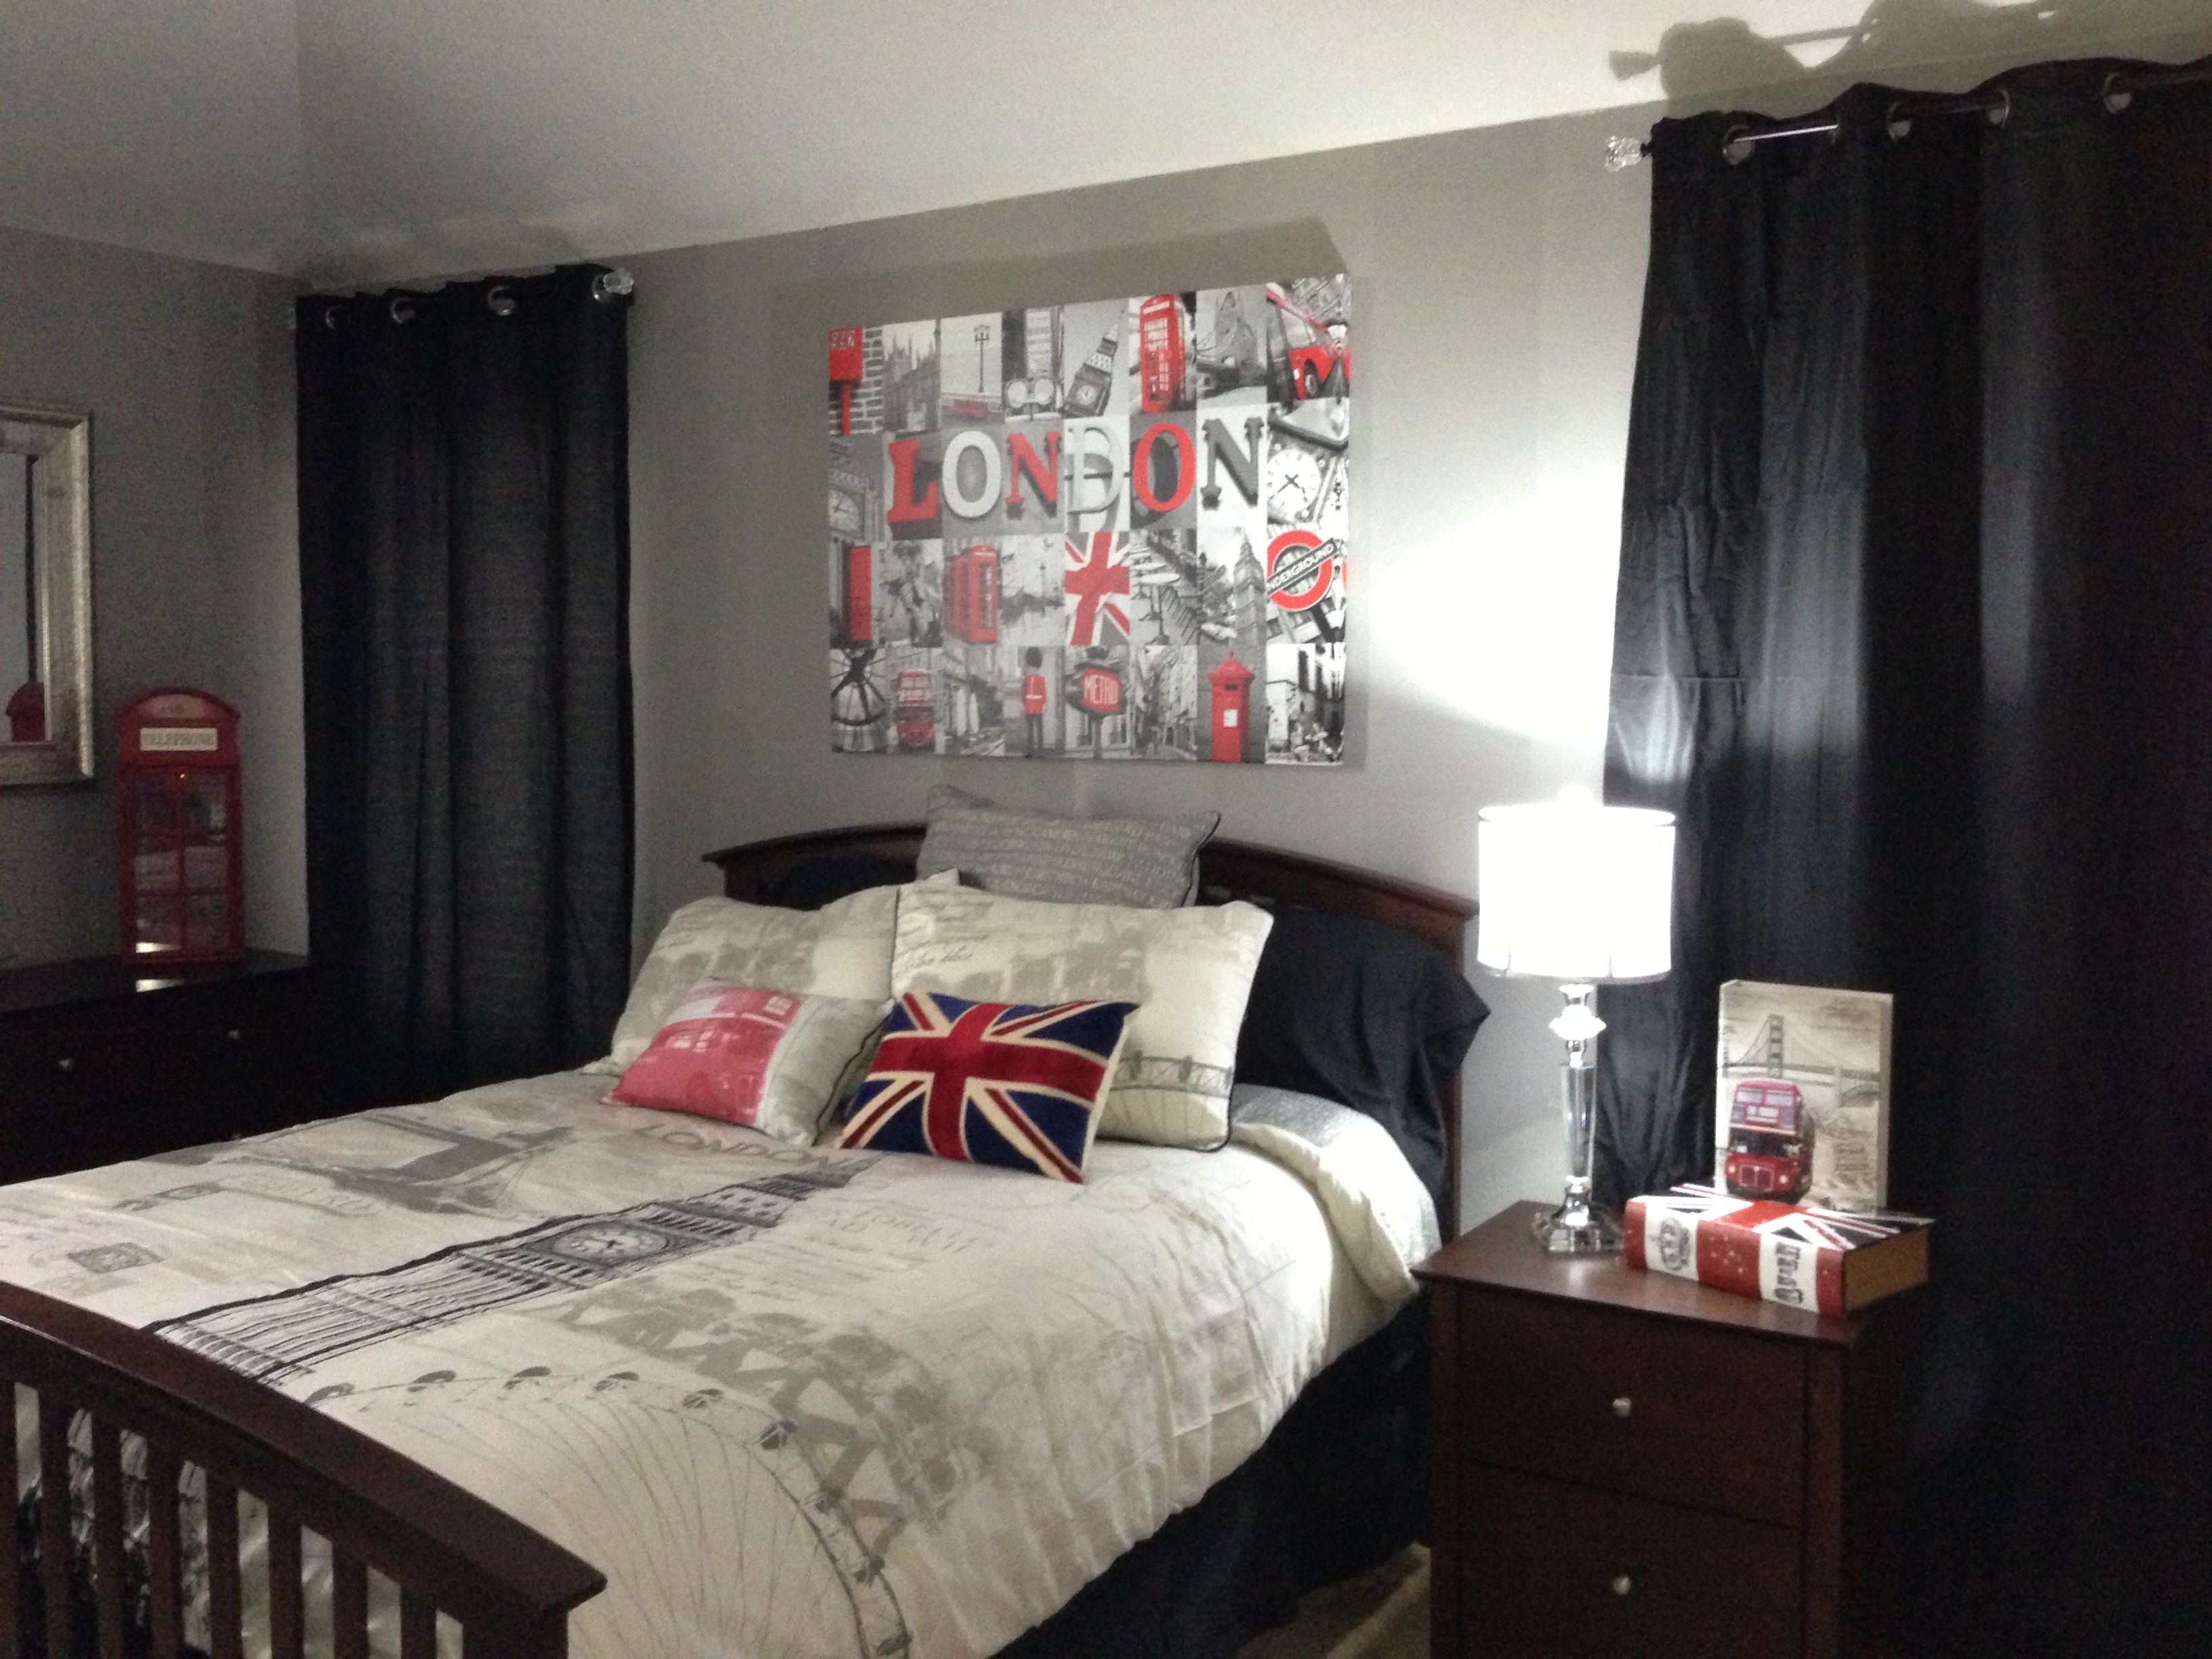 Best 25 london theme rooms ideas on pinterest london for Union jack bedroom ideas